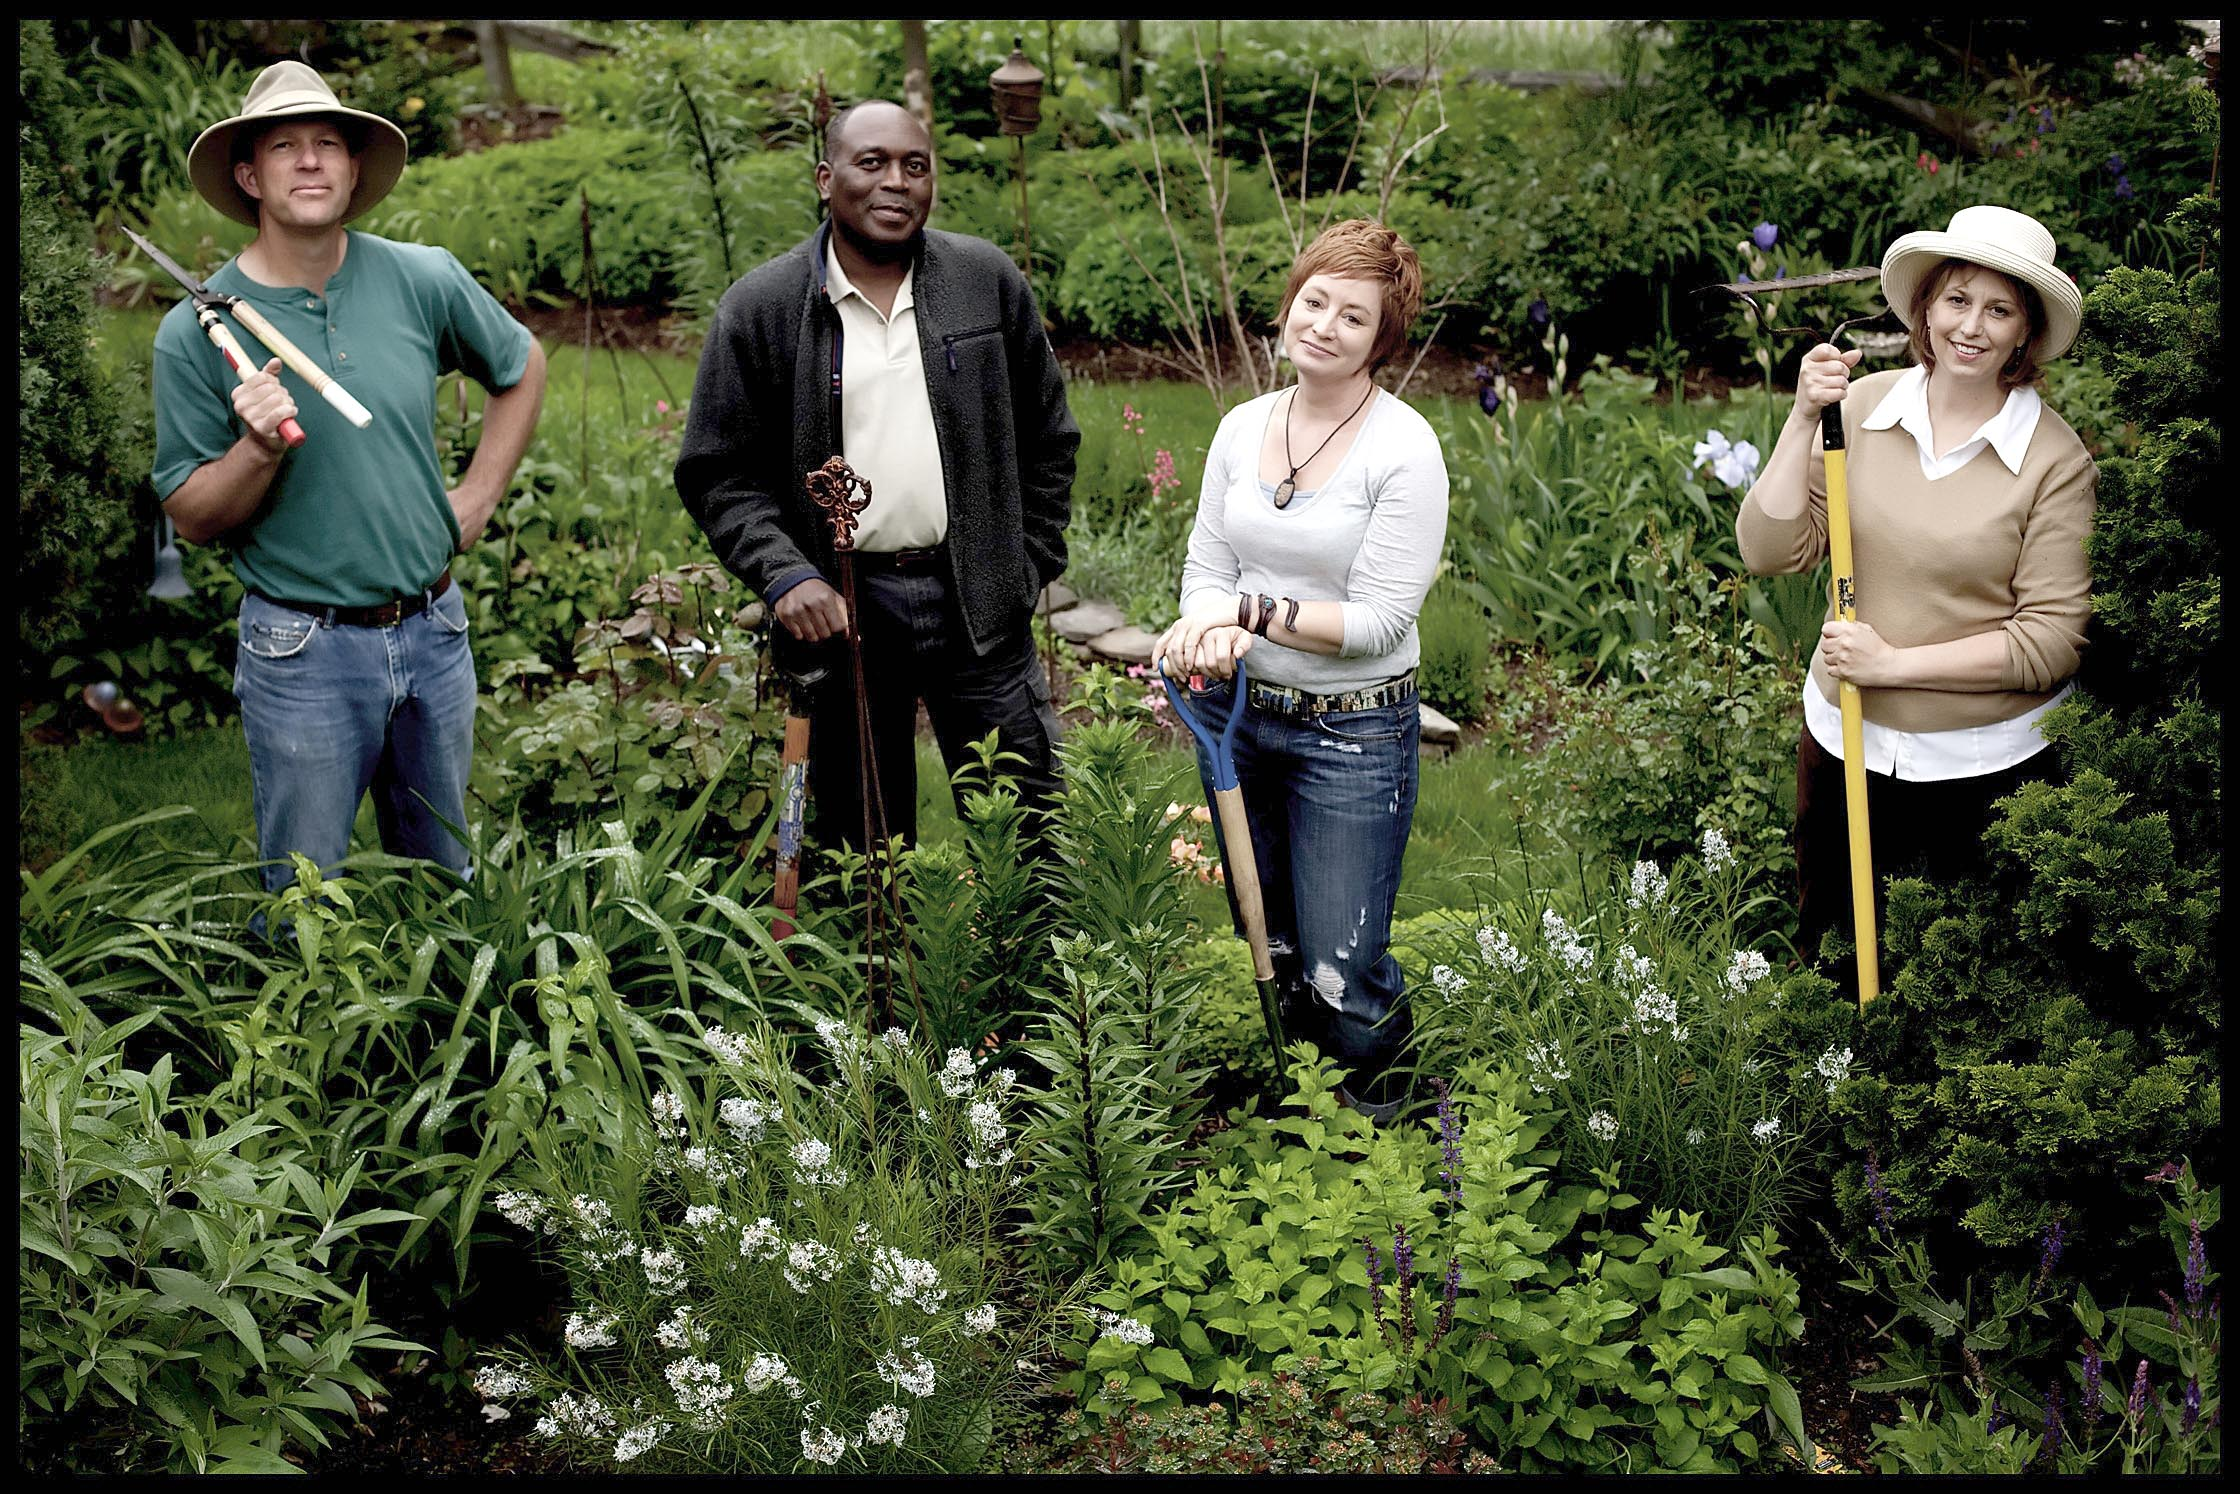 Gardening Group: New For Central Pa. Gardeners